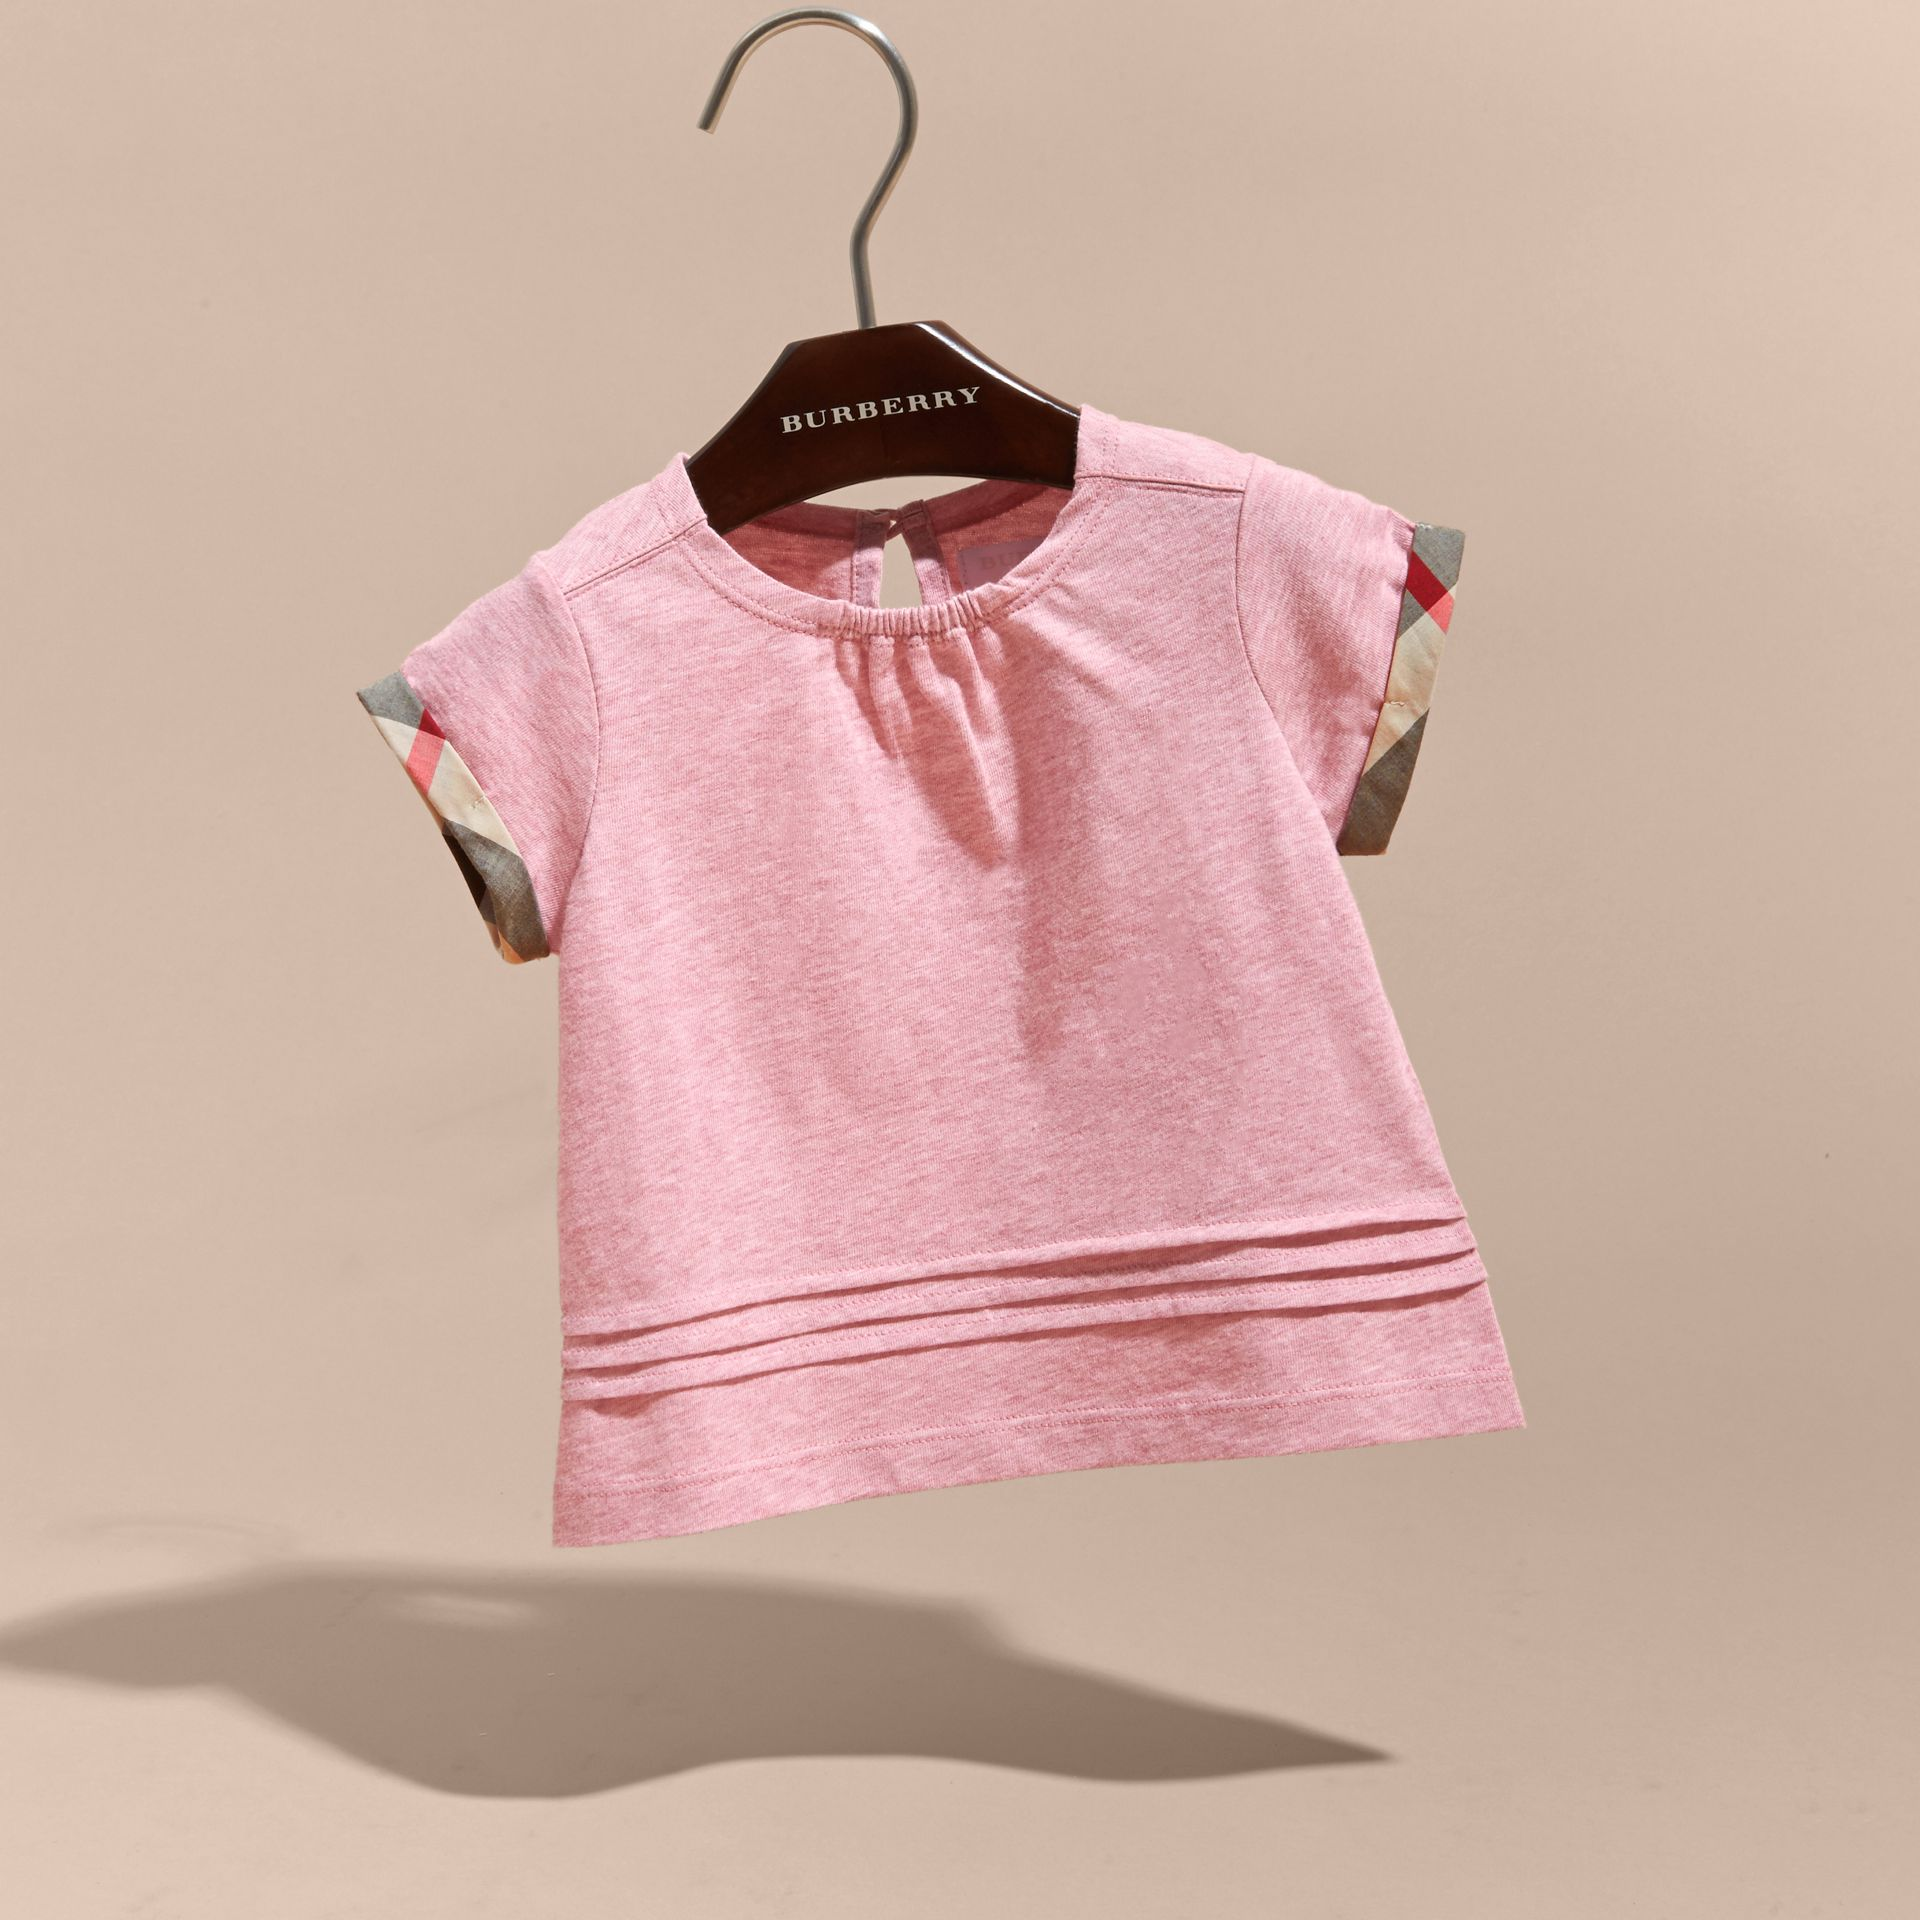 Pleat and Check Detail Cotton T-shirt in Light Copper Pink Melange | Burberry - gallery image 3